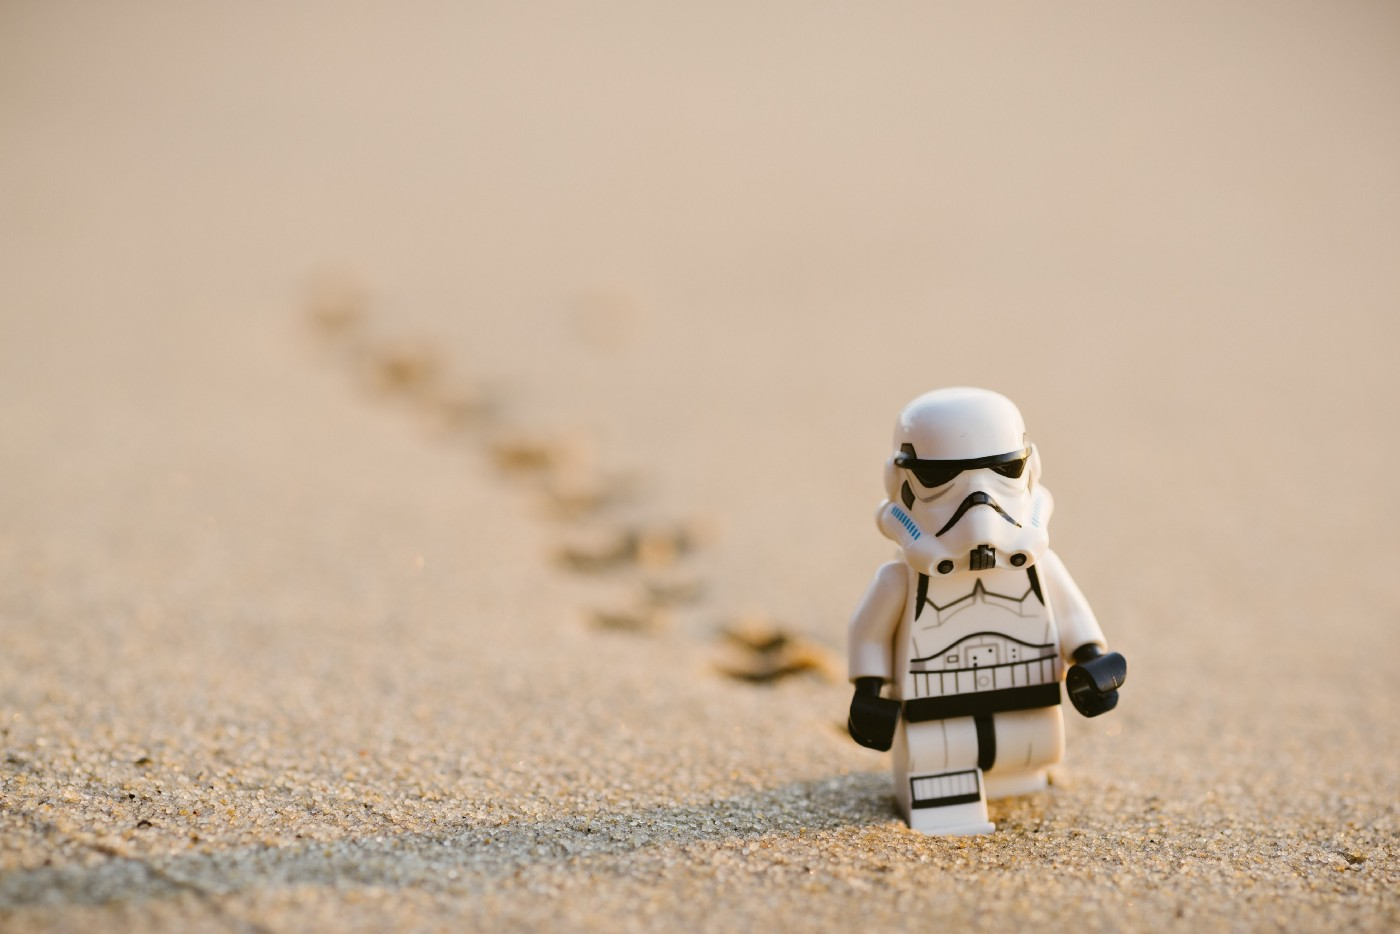 Toy stormtrooper leaving small footsteps in the sand.